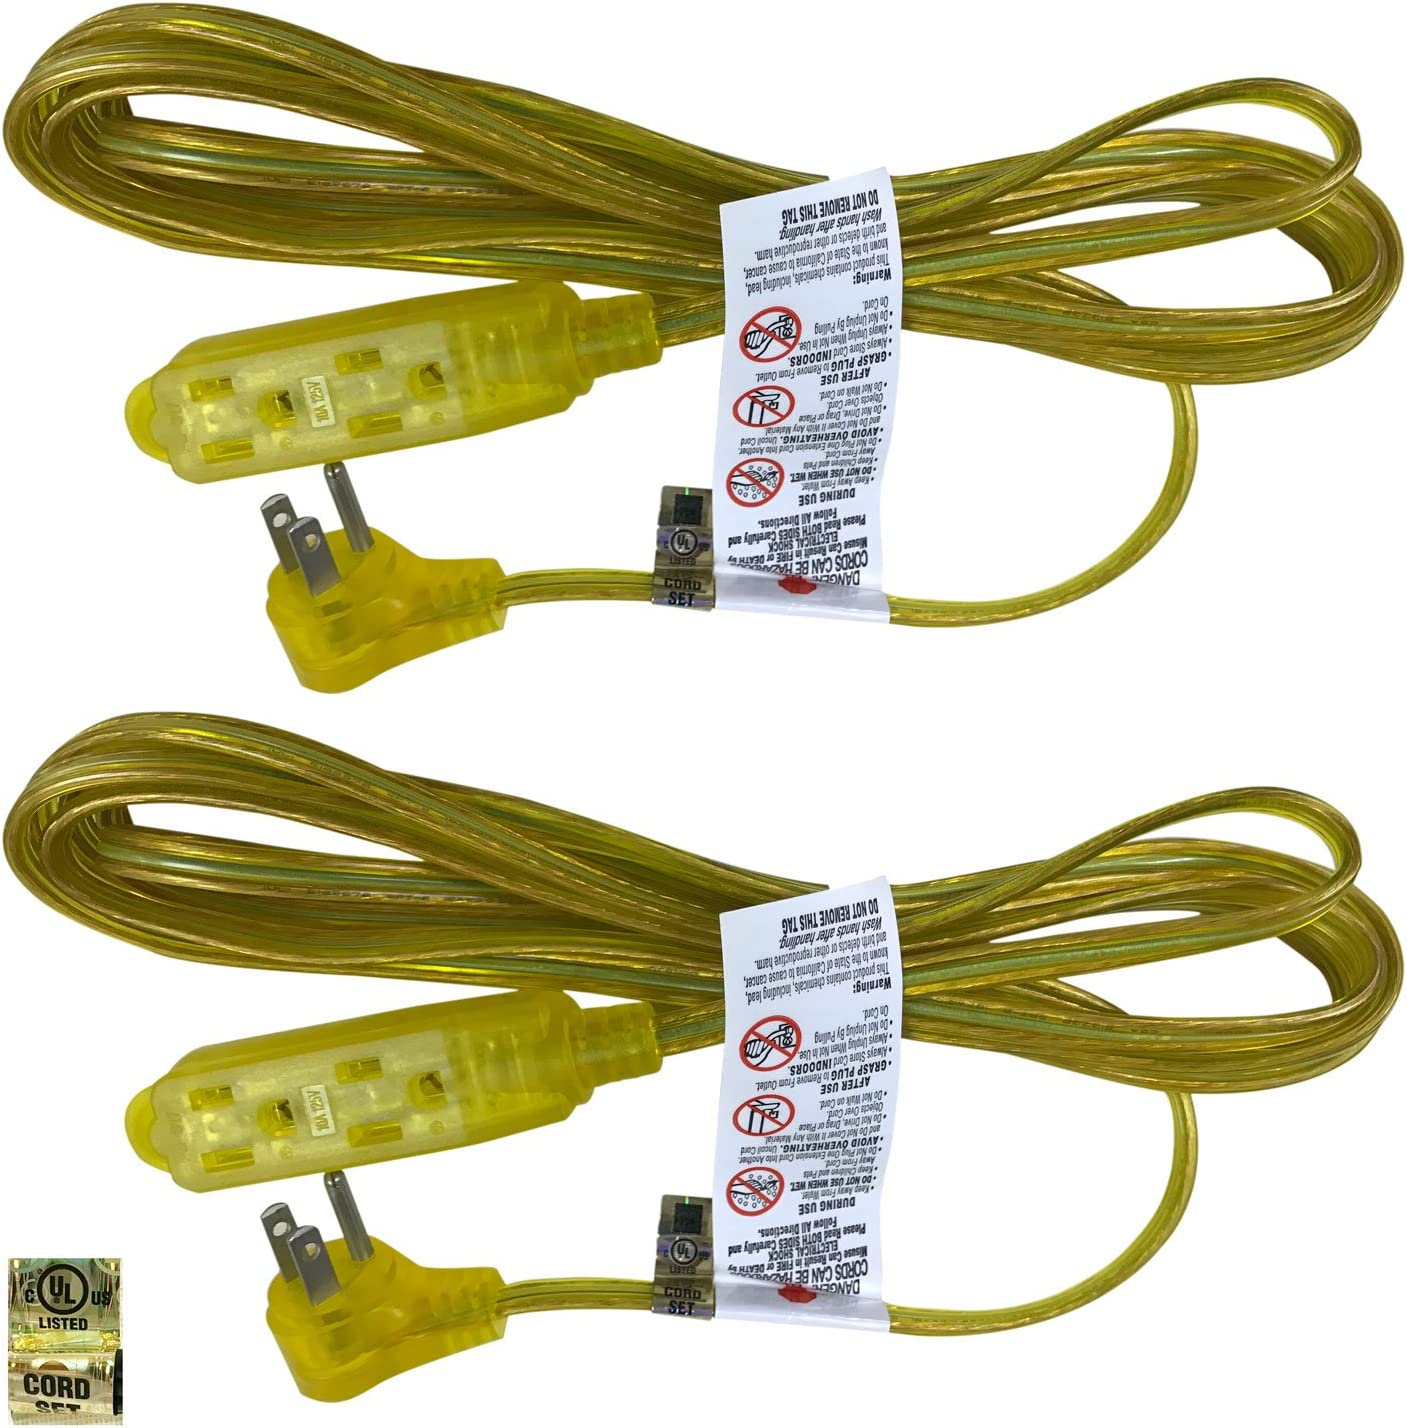 Royal Designs CO-9001-GL-6-2 Series Flat Plug Extension Cord for Indoor & Outdoor, 6 ft long, Gold, 3 Outlet Prong Grounded Wire UL Listed, Set of 2, 6'